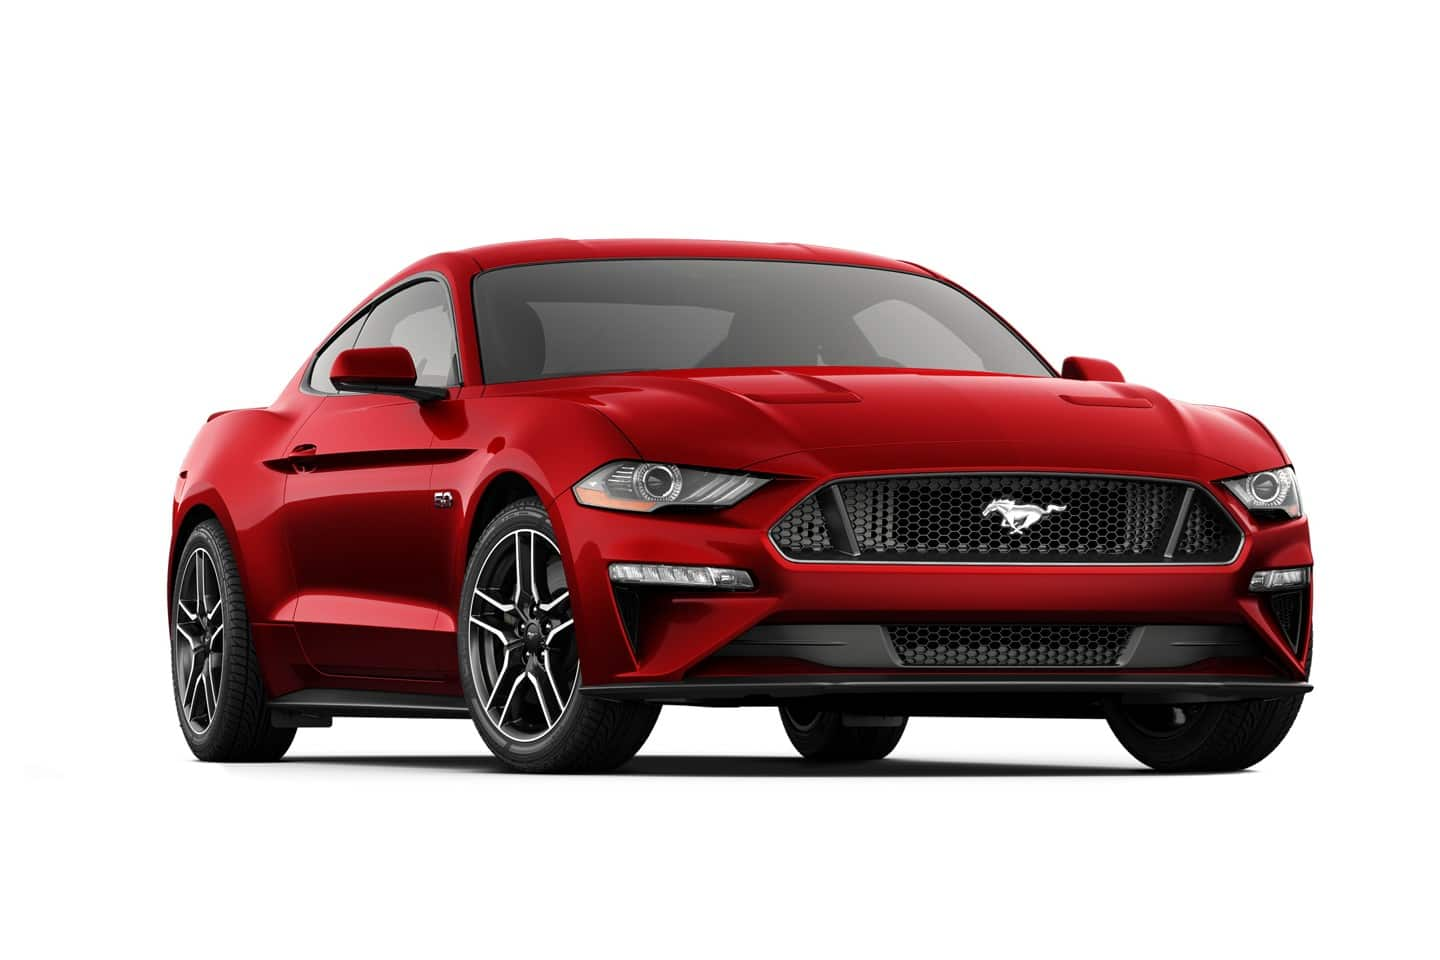 76 All New 2020 Ford Mustang Gt Spy Shoot